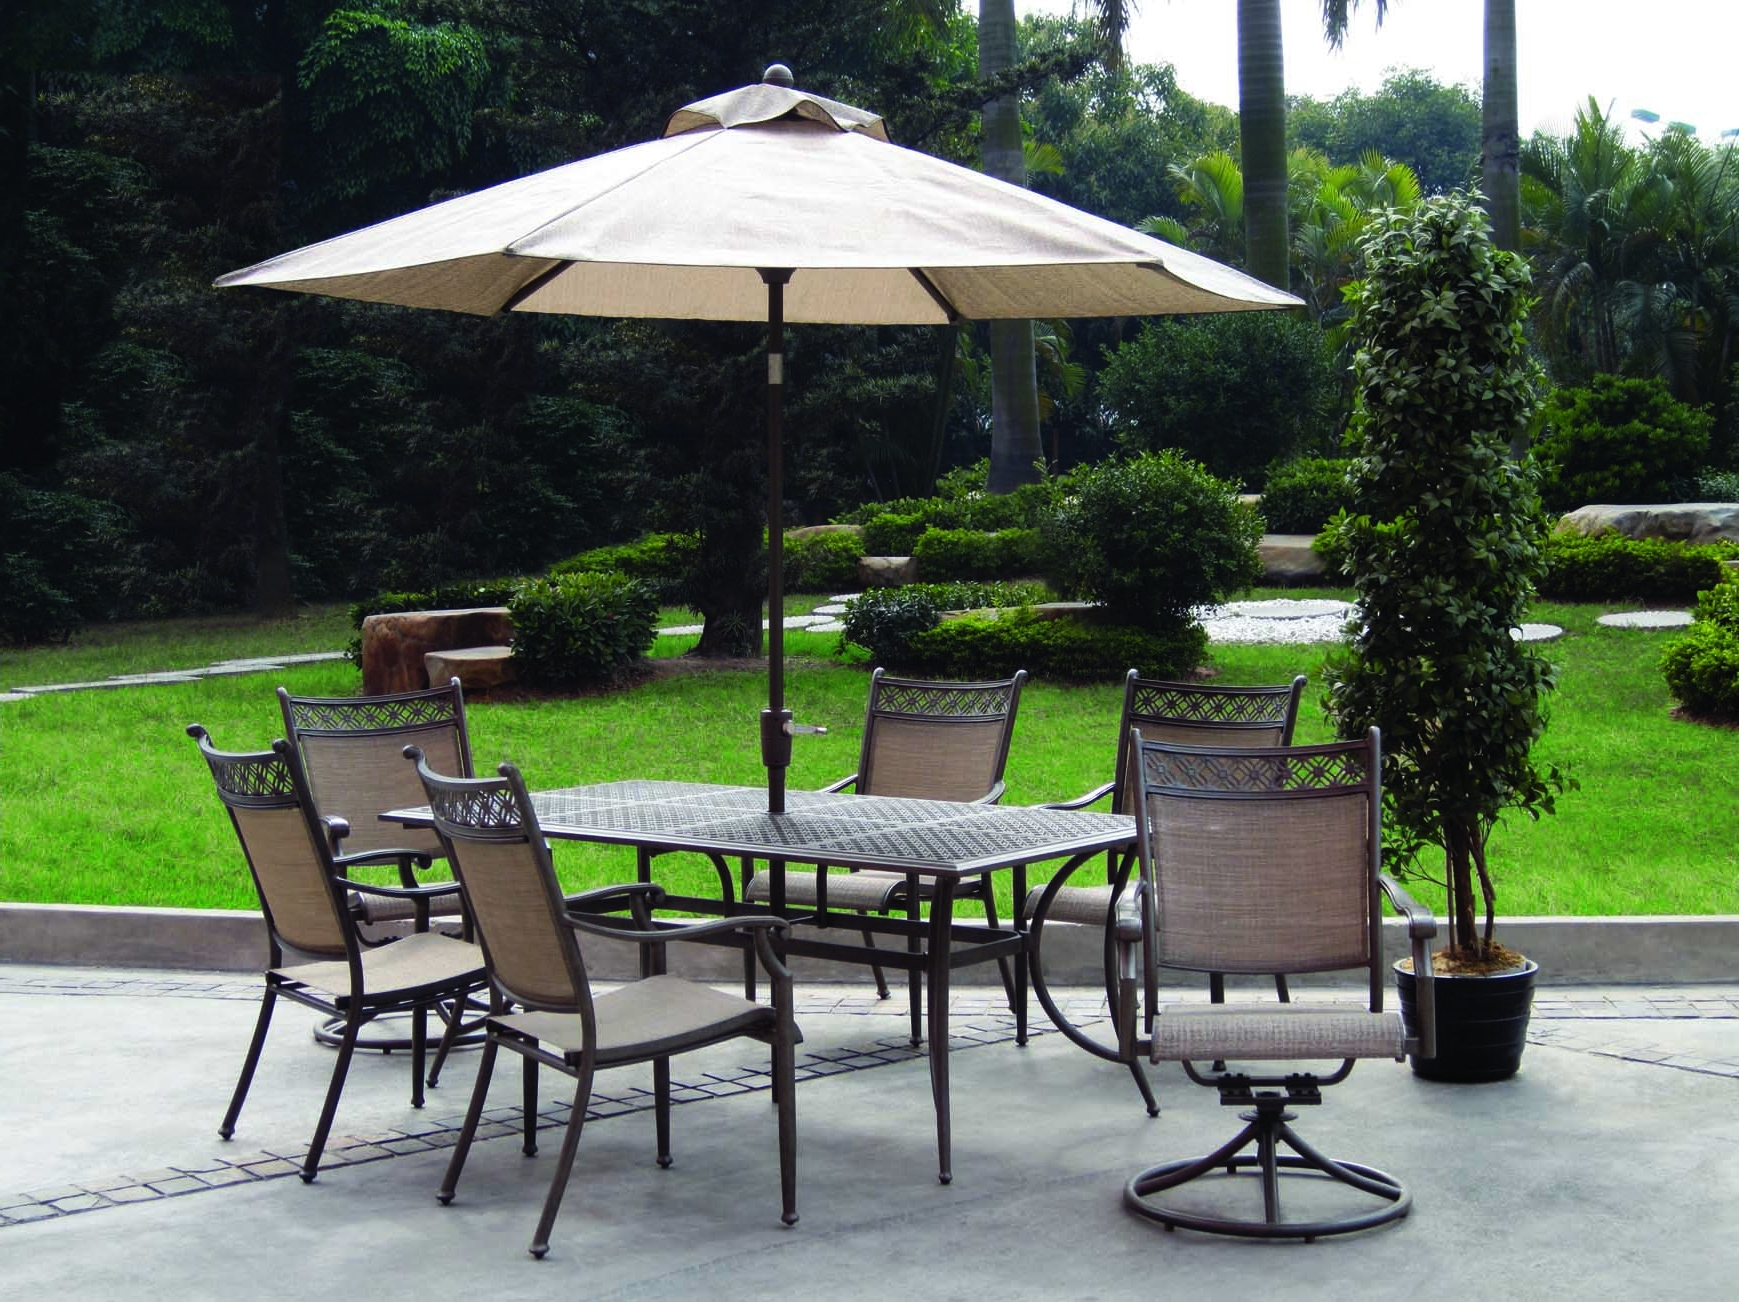 Fashionable Patio Table And Chairs With Umbrellas Within Home Depot Outdoor Furniture Umbrellas With 2 Swivel Chair Pine (View 2 of 20)